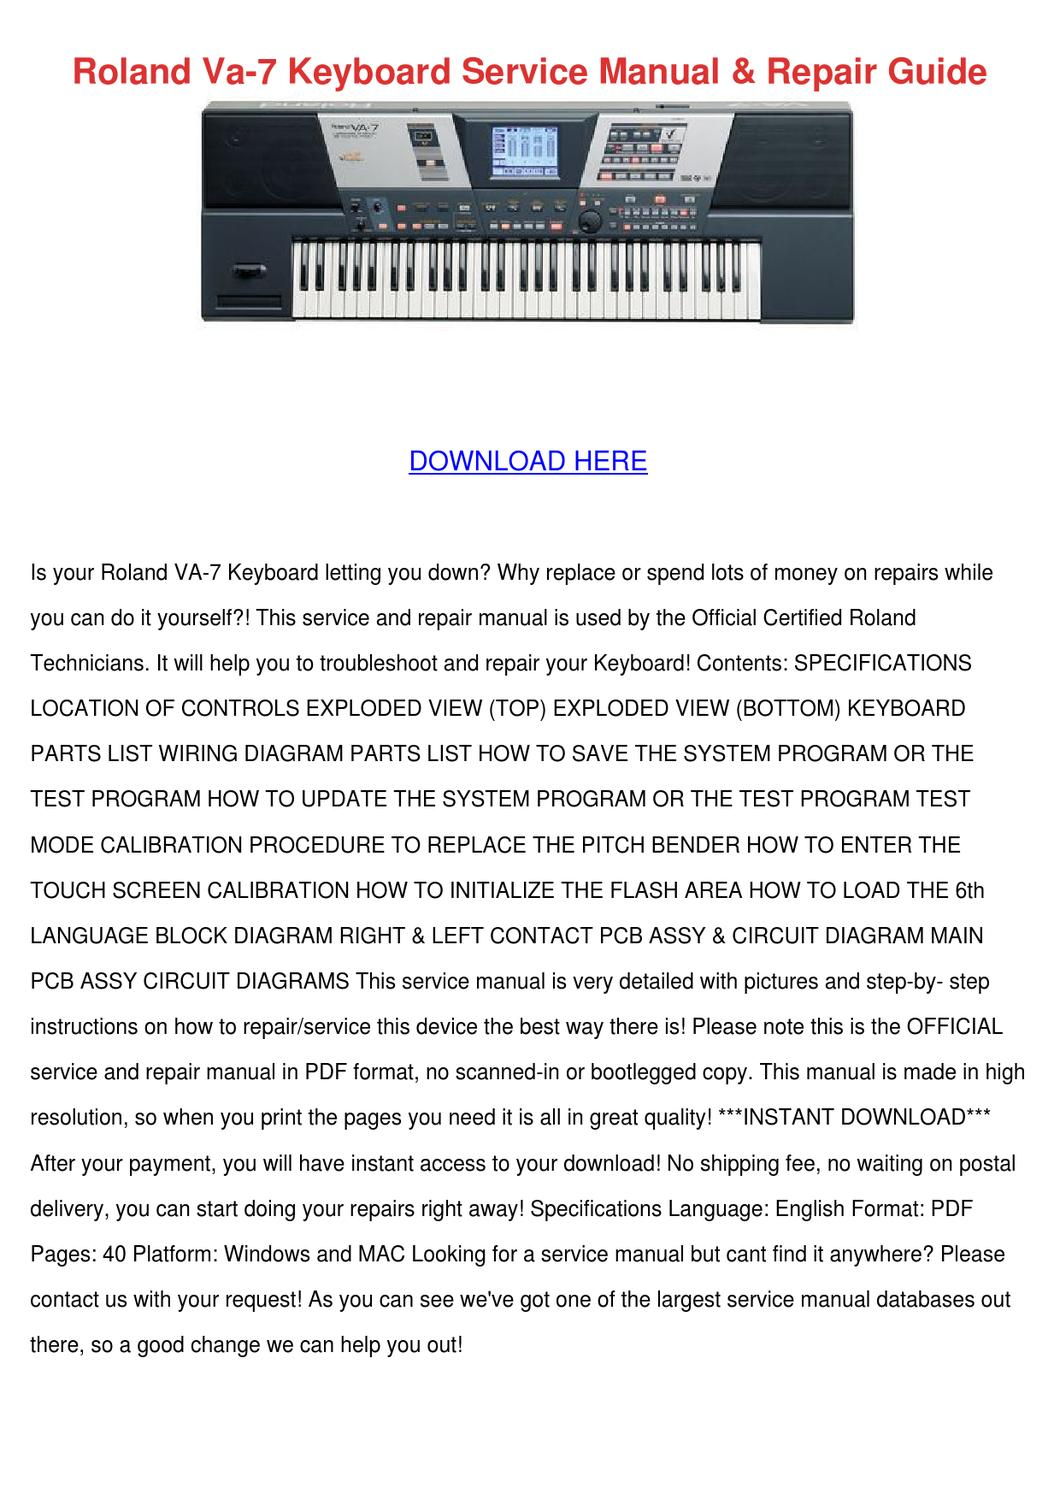 roland va 7 keyboard service manual repair gu by agatha grassmyer issuu. Black Bedroom Furniture Sets. Home Design Ideas